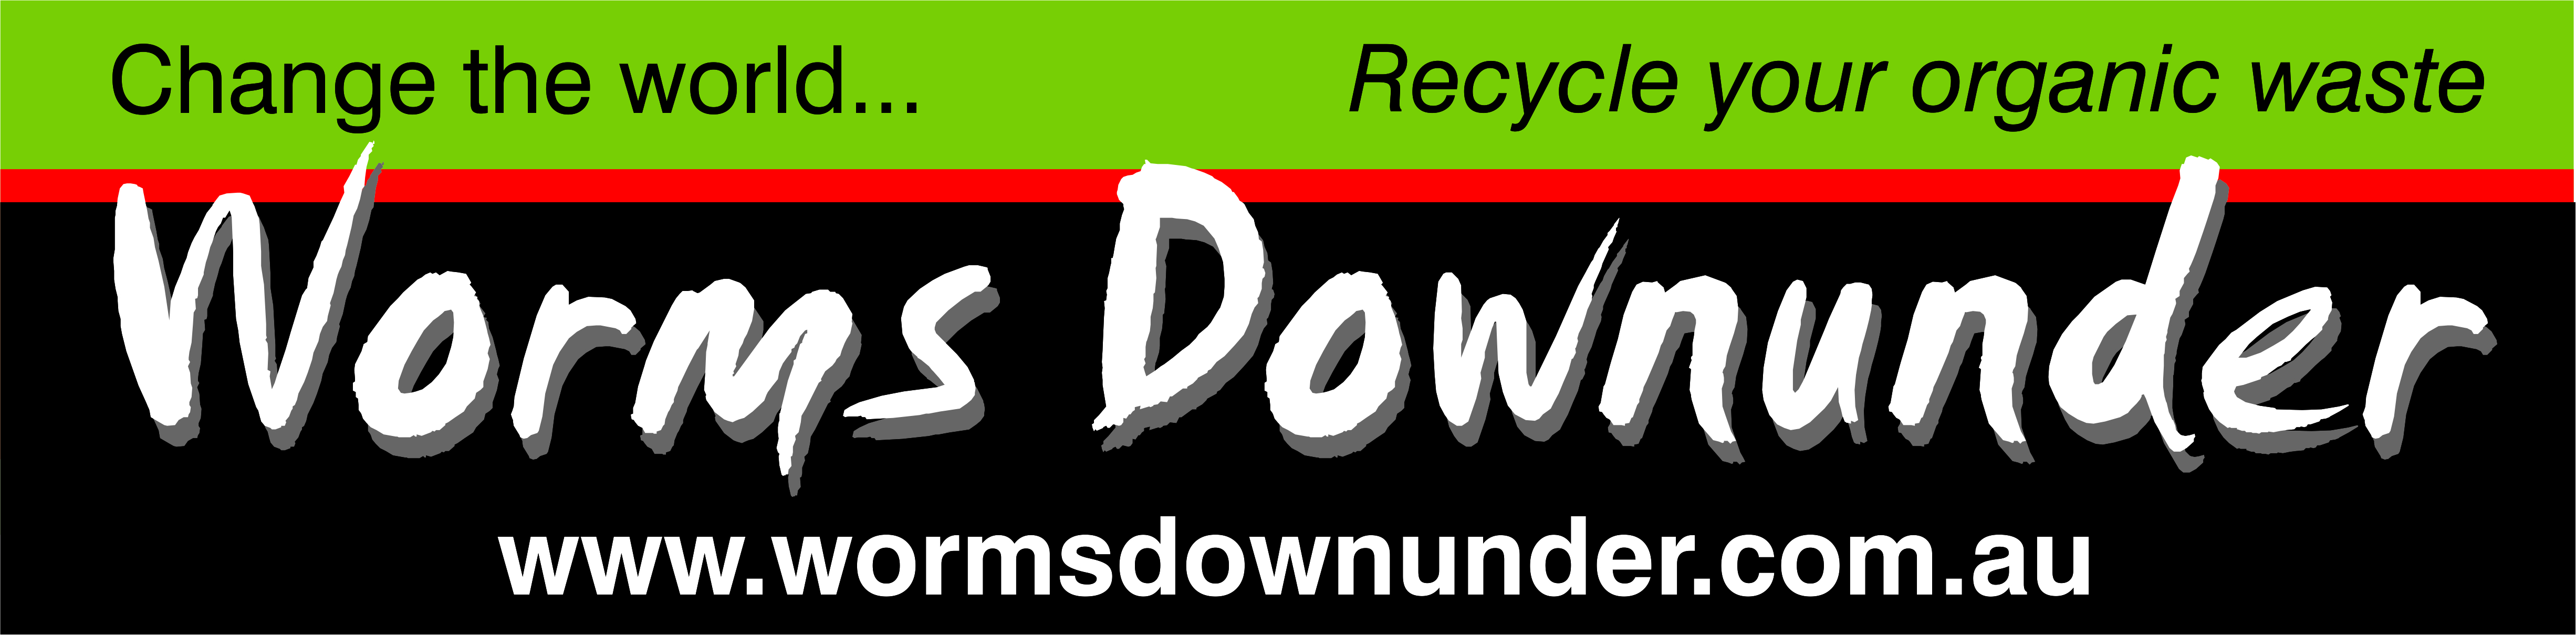 Worms Downunder logo